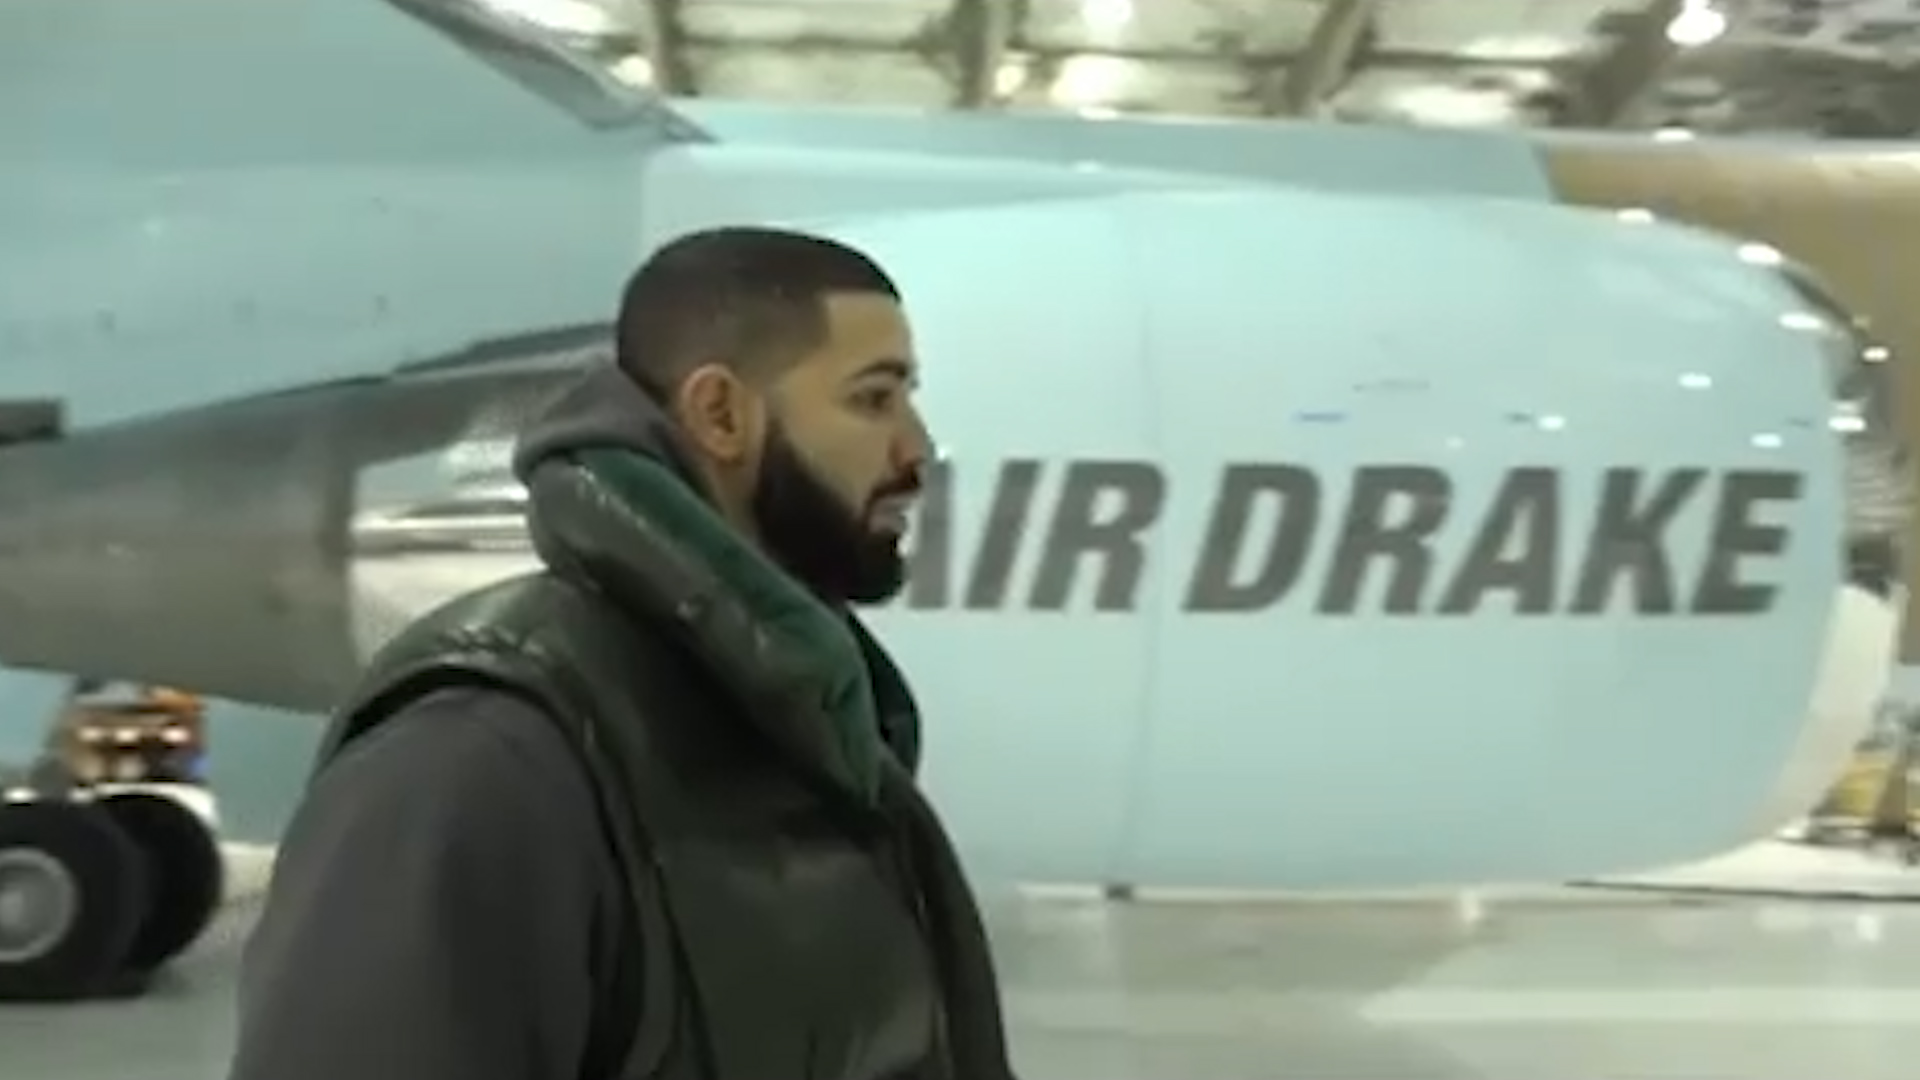 Drake Now Owns a Huge $185 Million Jet That He's Calling 'Air Drake'